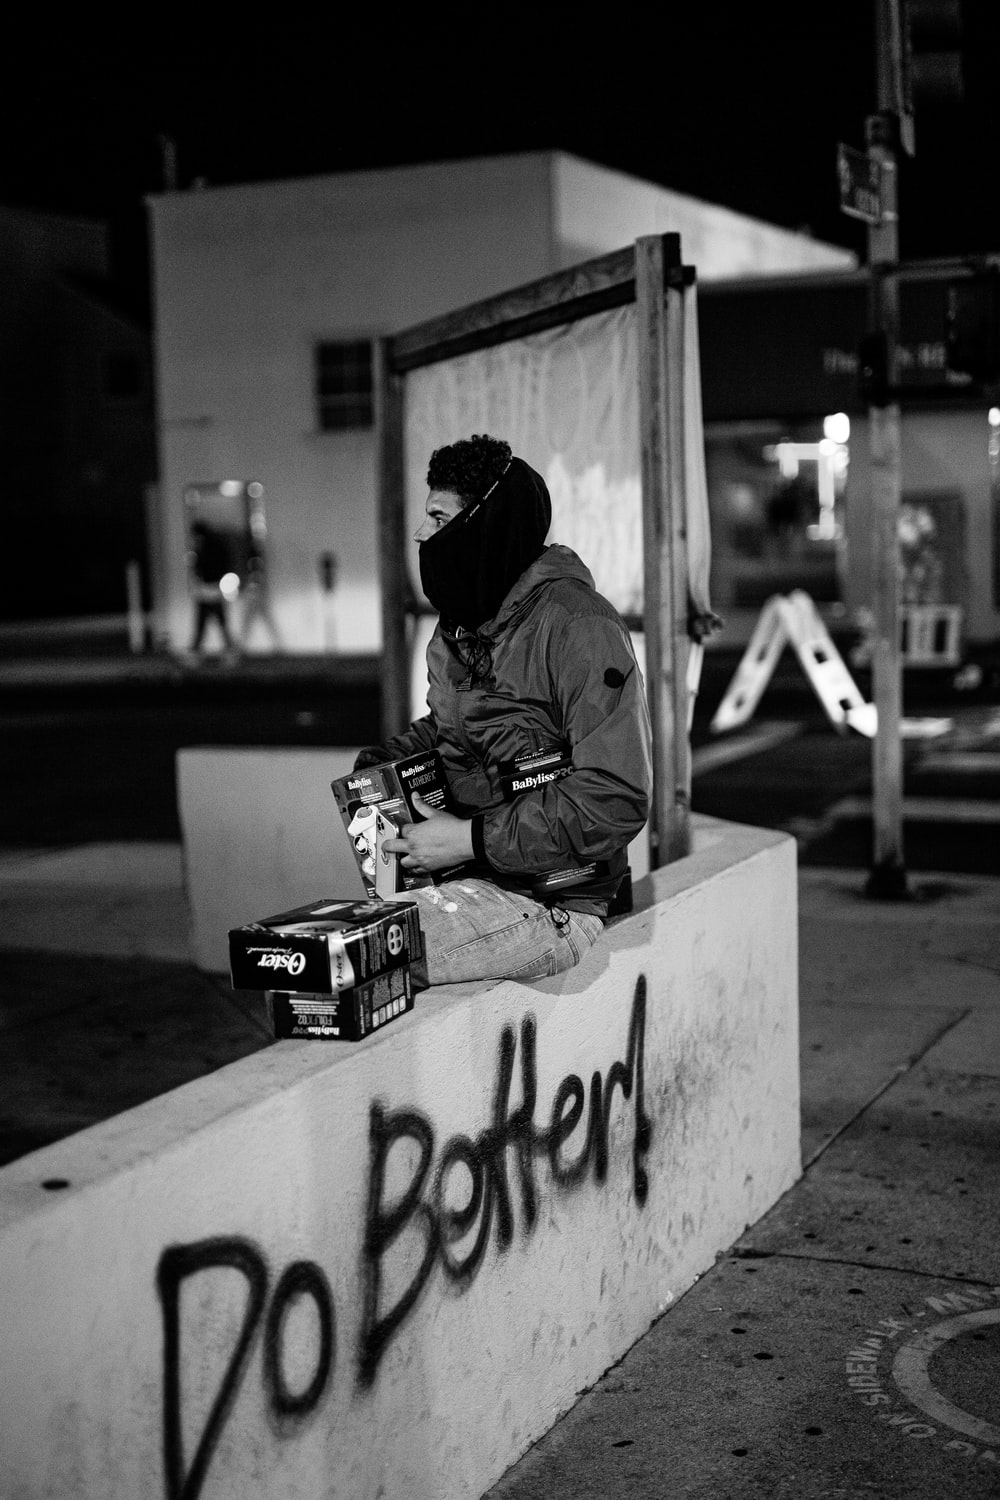 man in brown jacket and black knit cap sitting on concrete bench